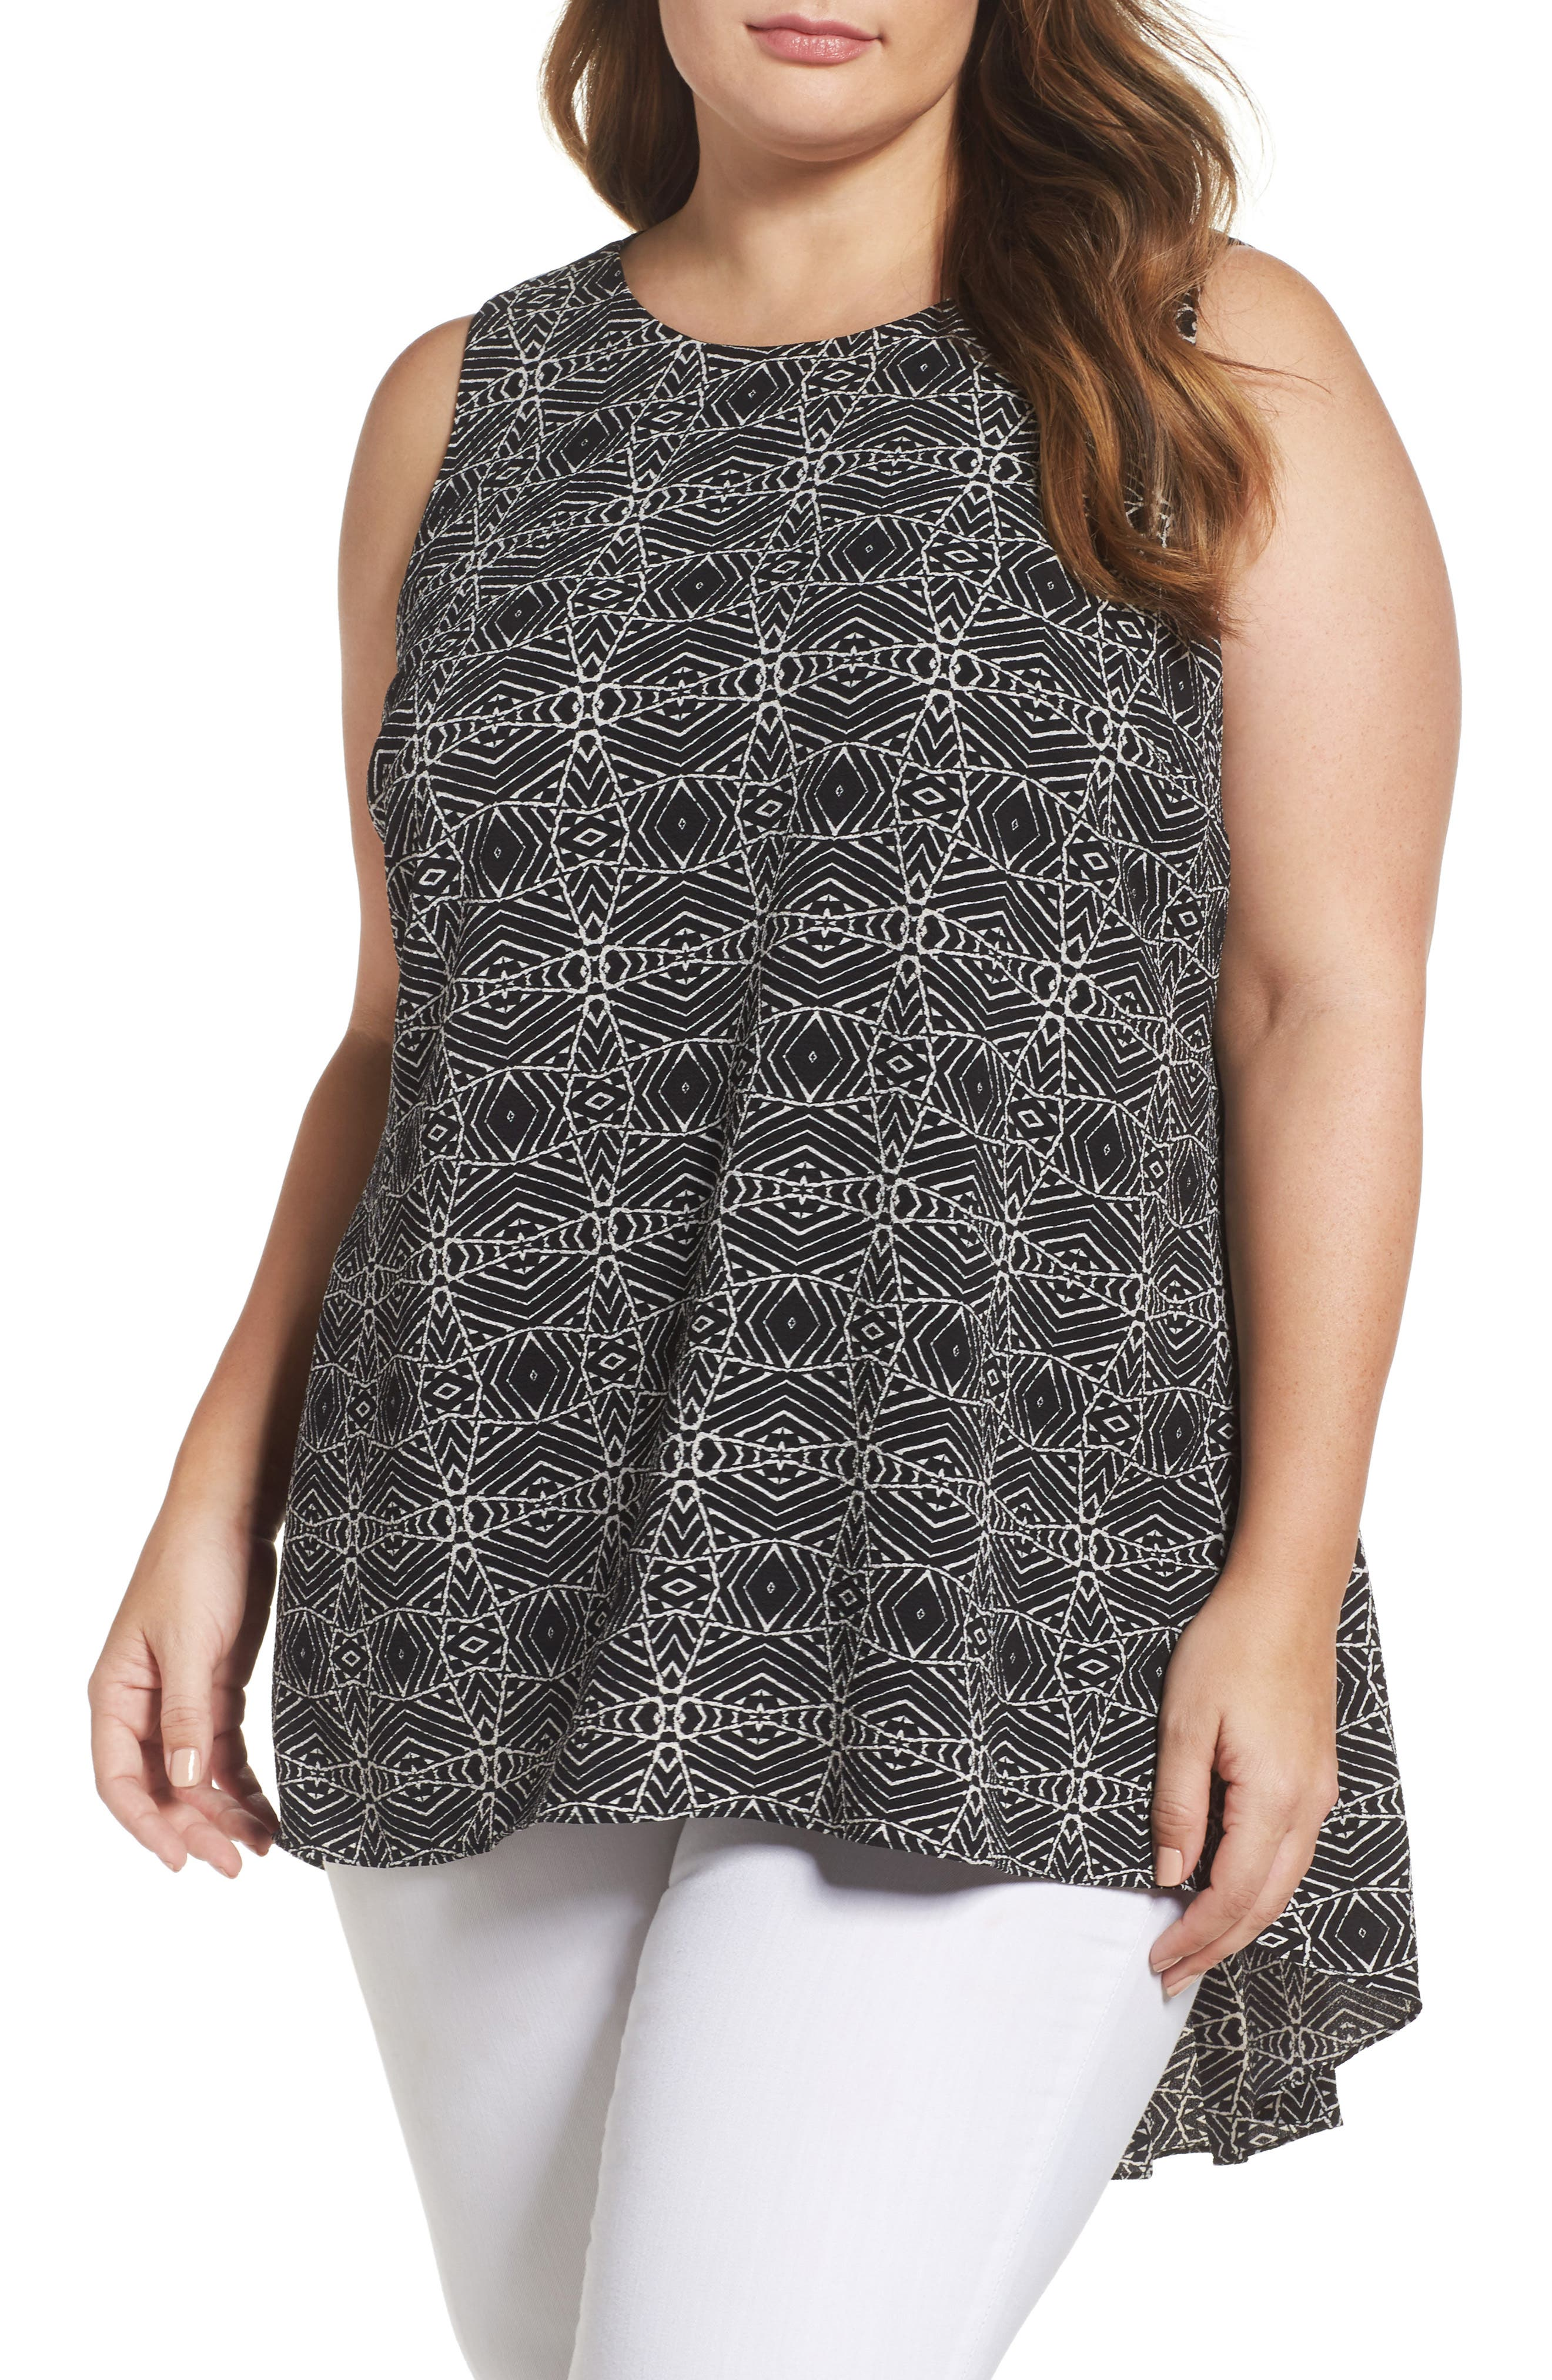 Main Image - Vince Camuto Yoruba Graphic High/Low Top (Plus Size)